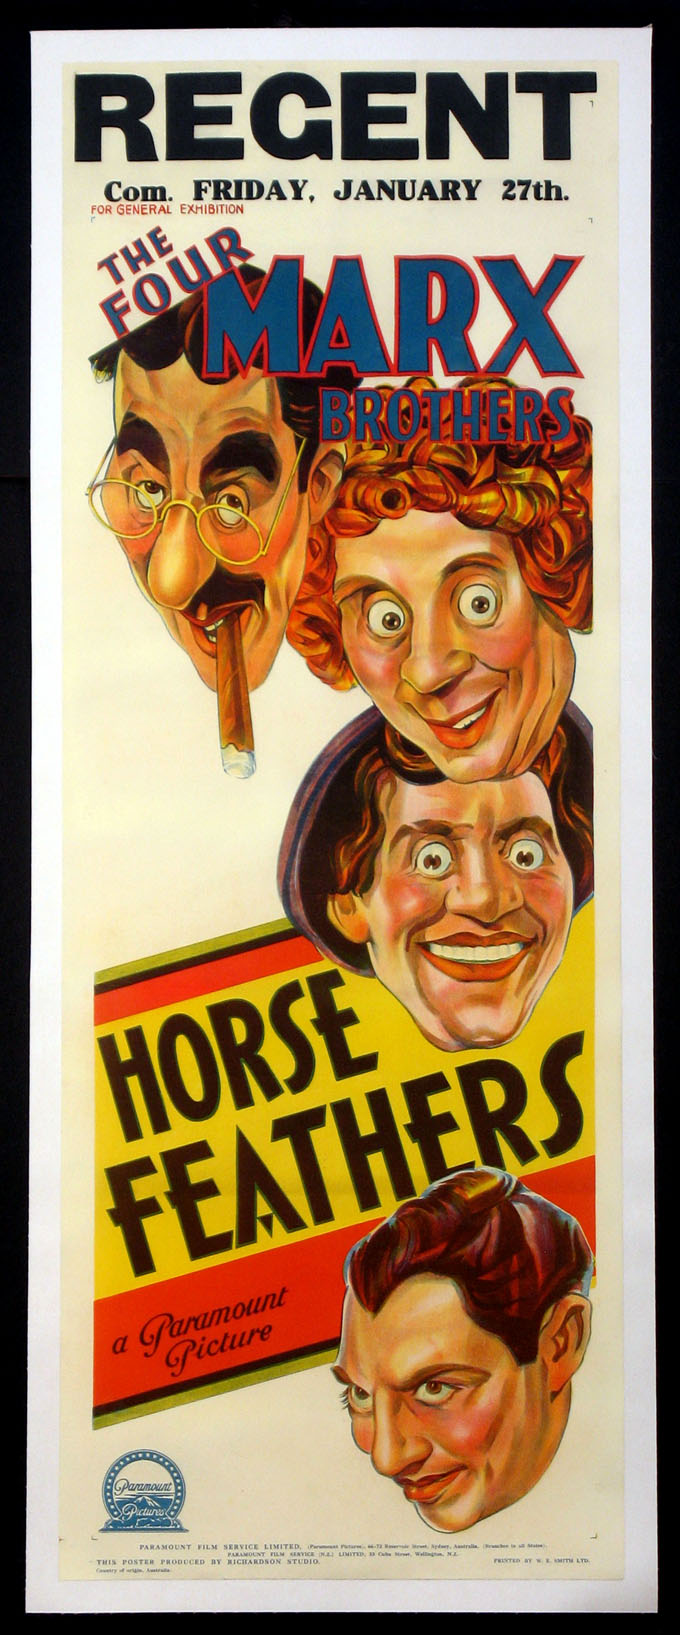 HORSE FEATHERS (Horsefeathers) @ FilmPosters.com